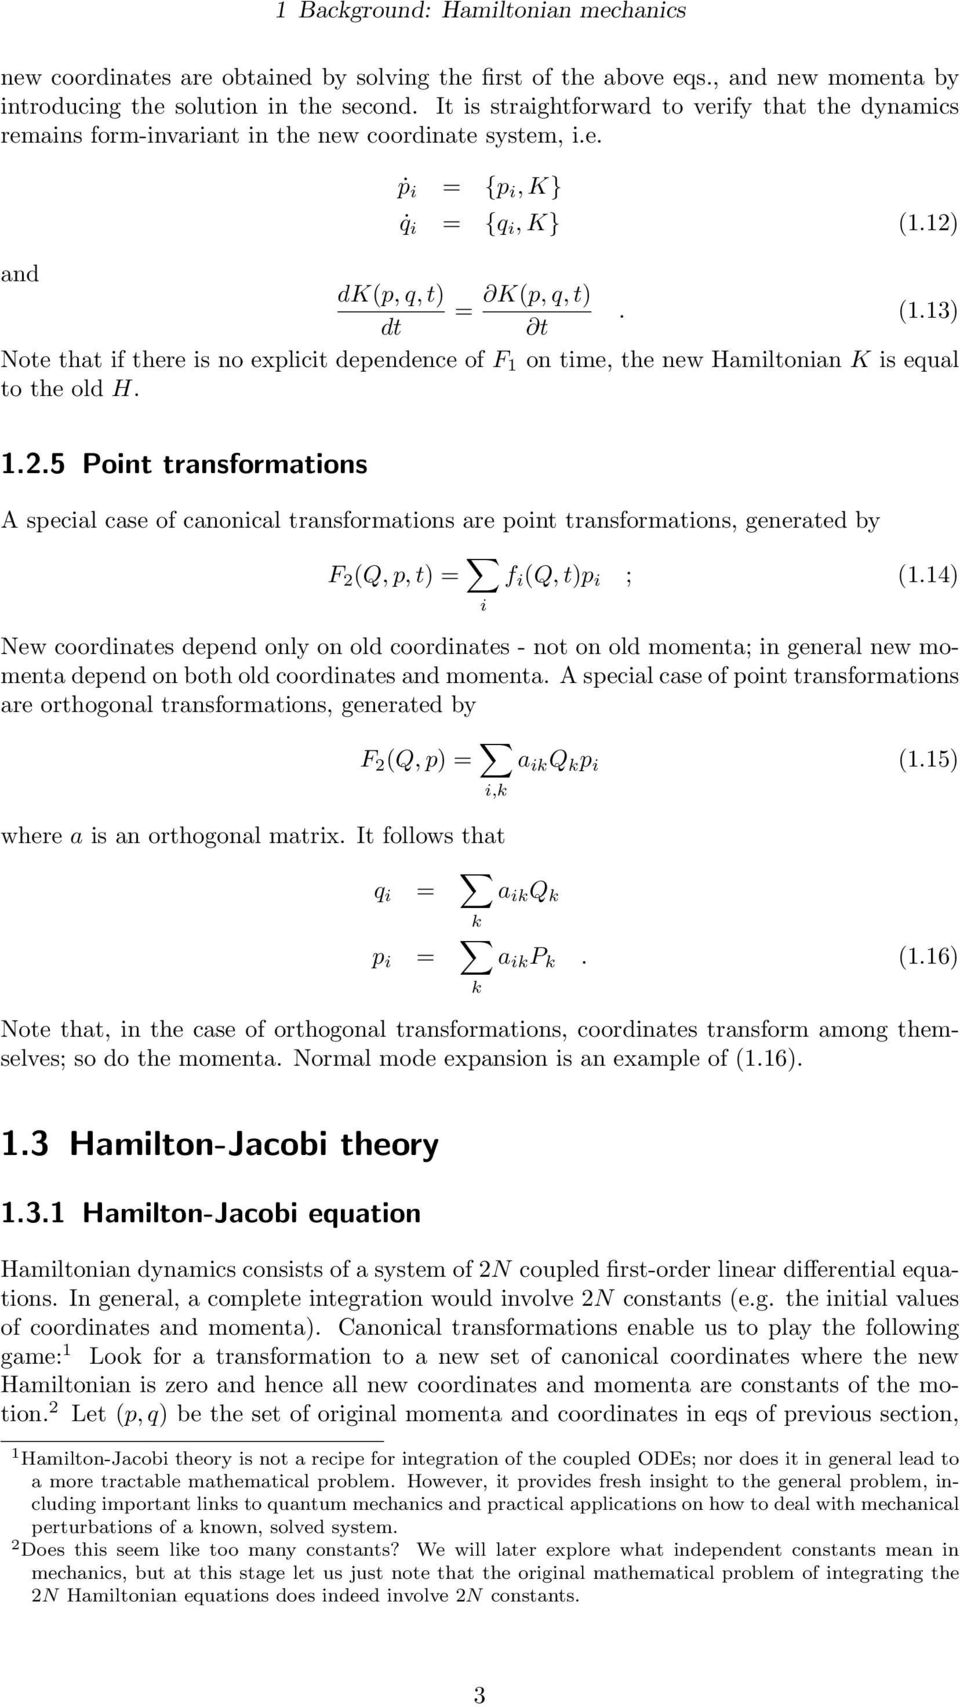 12) and dk(p, q, t) K(p, q, t) =. (1.13) dt t Note that if there is no explicit dependence of F 1 on time, the new Hamiltonian K is equal to the old H. 1.2.5 Point transformations A special case of canonical transformations are point transformations, generated by F 2 (Q, p, t) = i f i (Q, t)p i ; (1.